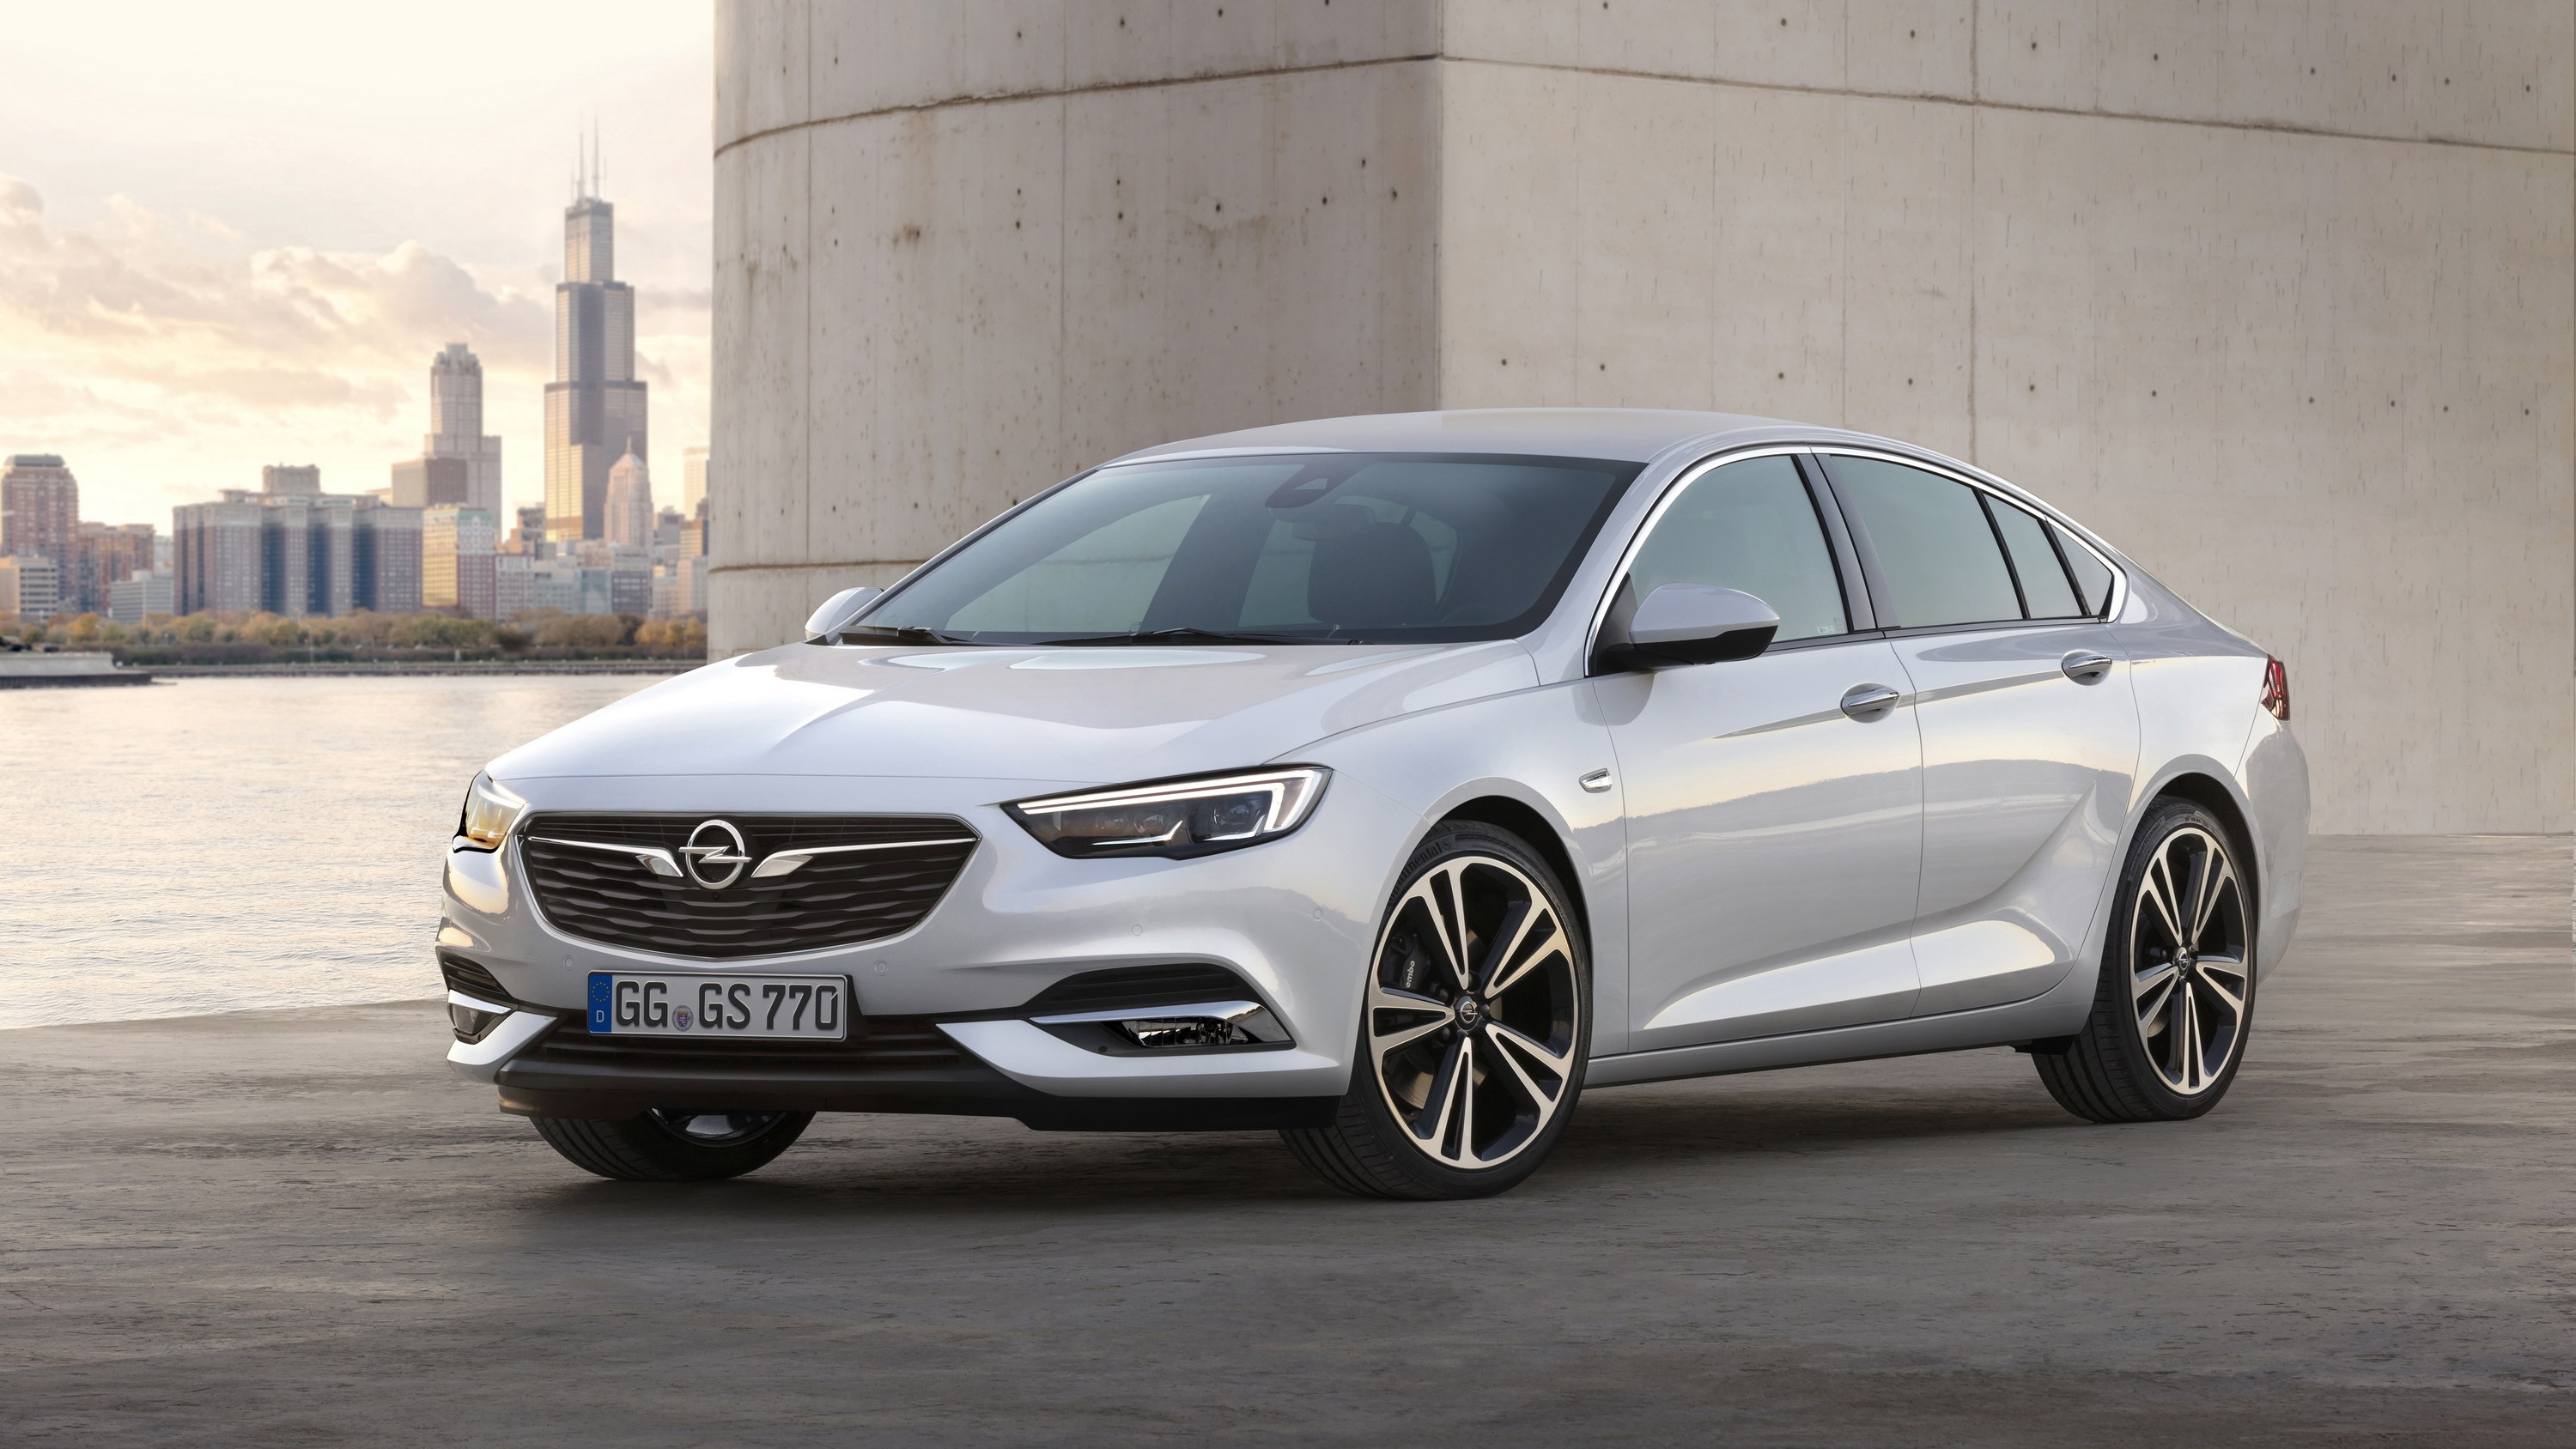 Vauxhall Insignia 2018 Opel Insignia Latest News Reviews Specifications Prices